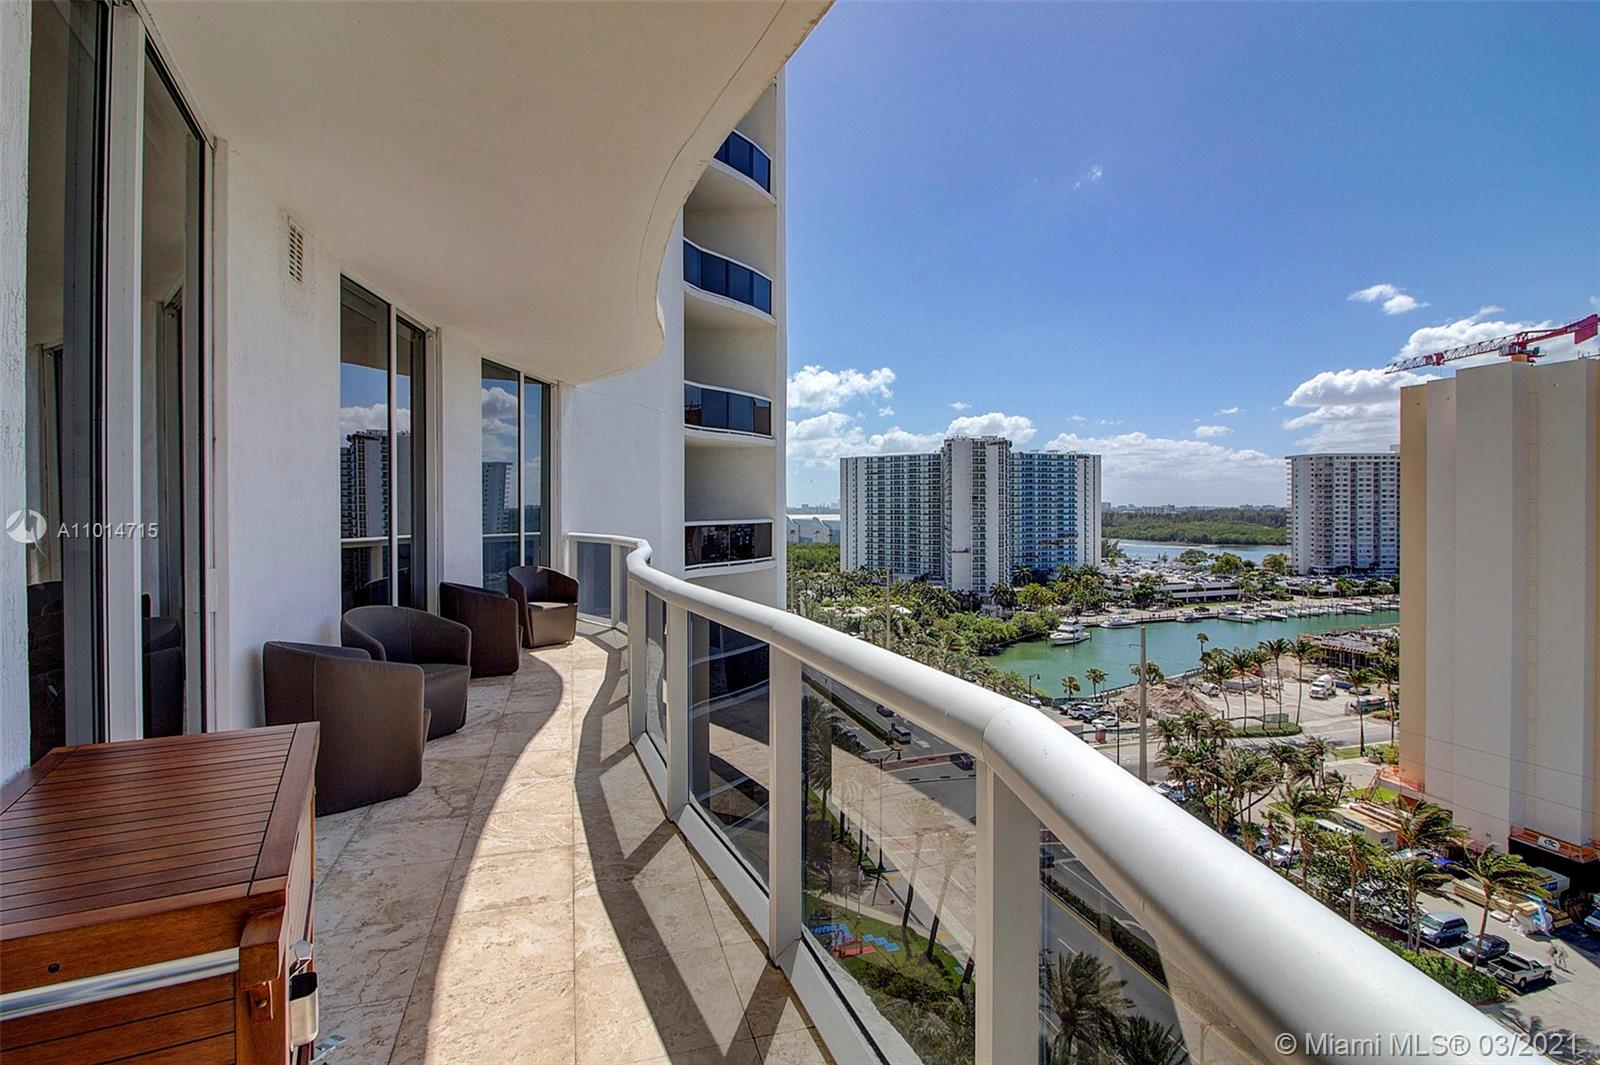 Beautiful 2 Bedrooms/ 2 Bathrooms Intracoastal front Unit in Trump Tower I Sunny Isle, walking distance to shops, restaurants and supermarkets.   The unit is loaded with upgrades such as high end Subzero Refrigerator, Bosh oven and stove, Granite tops and much more.  Breathtaking views to the  intracoastal.  the unit sits on the 10th floor with a large entrance hallway.  Lots of space in this 1435 sq ft apartment.  The building very well maintained.World class amenities including a full service restaurant as well as Beach service.  ASKING PRICE IS FIRM WITH LITTLE TO NO ROOM FOR NEGOTIATION!